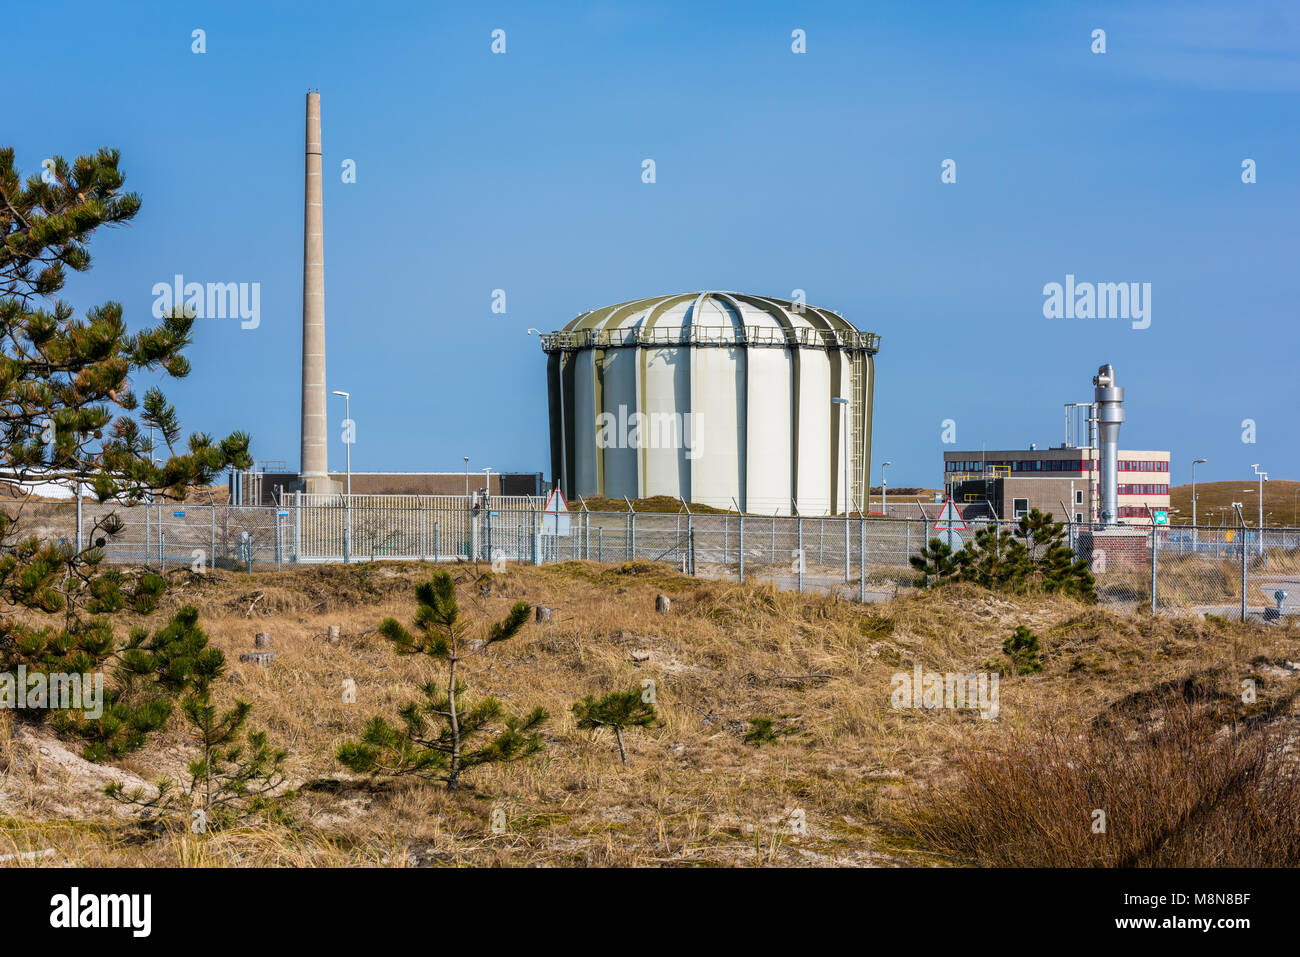 Nuclear Reactor at the Energy Research Centre of the Netherlands (ECN) in Petten, Netherlands - Stock Image